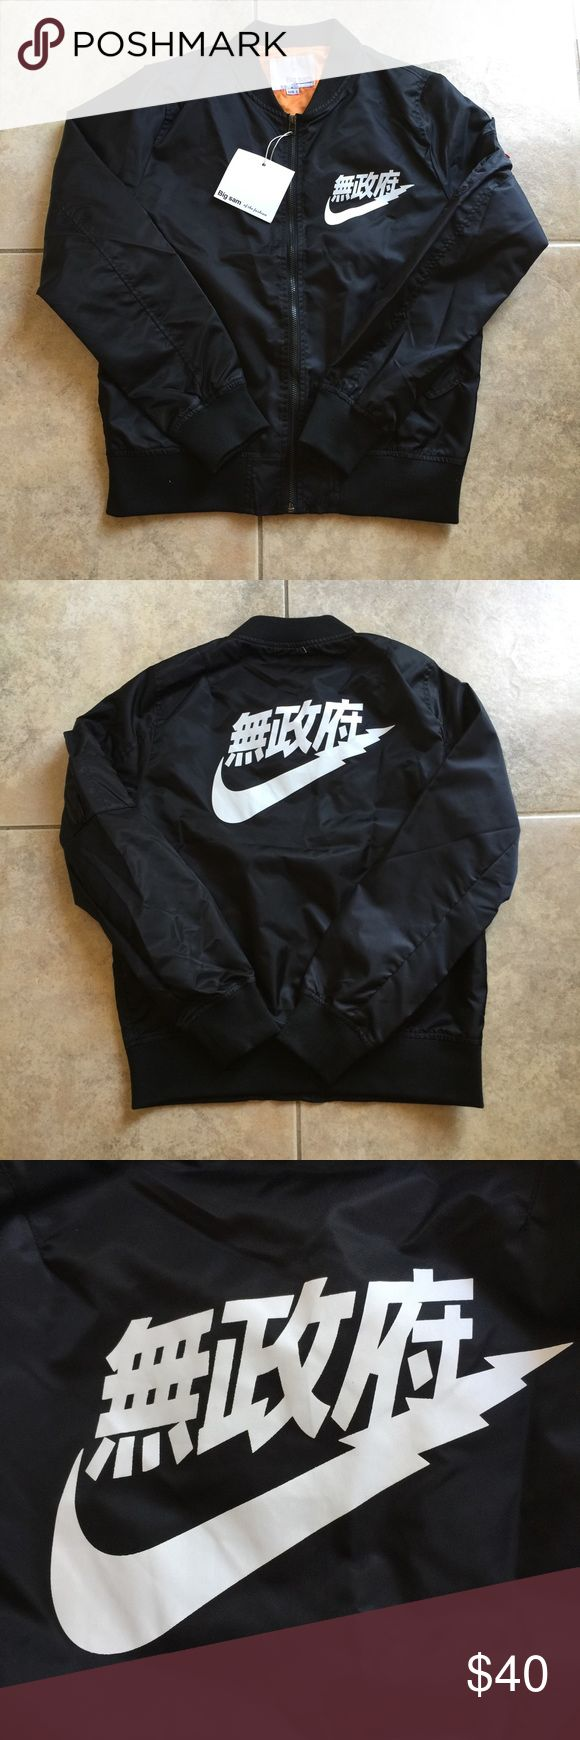 """Rare Air Jacket Brand New with tags. Size Men's Large (Fits more like a Men's Medium). No stains, rips, or fading. Measurements - Pit to Pit: 21"""". Top to Bottom: 26"""". Made by Big Sam. Big Sam Jackets & Coats"""